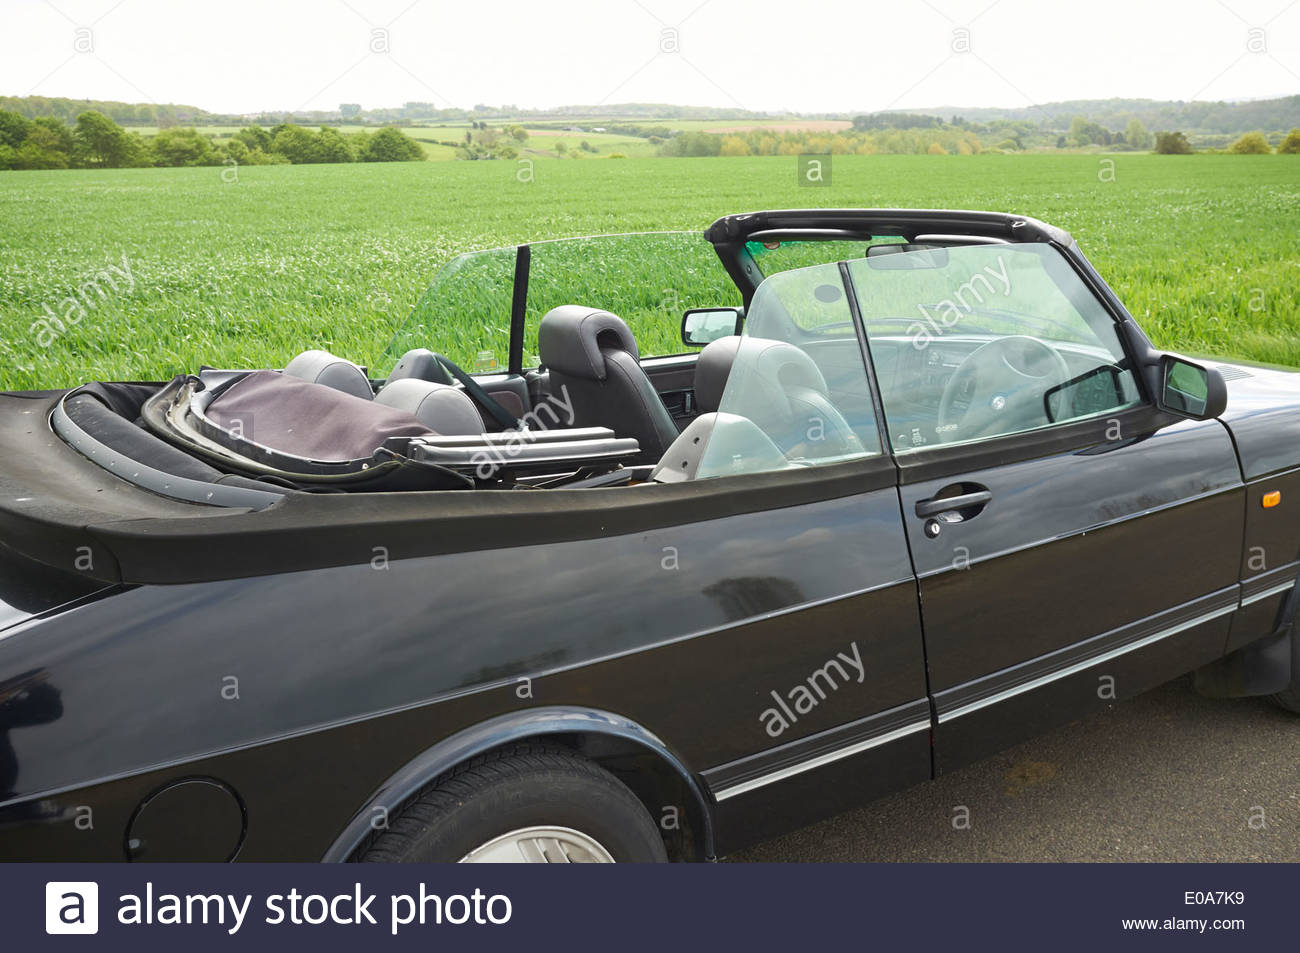 Black Saab 900 Convertible classic car parked in Oxfordshire UK - Stock Image